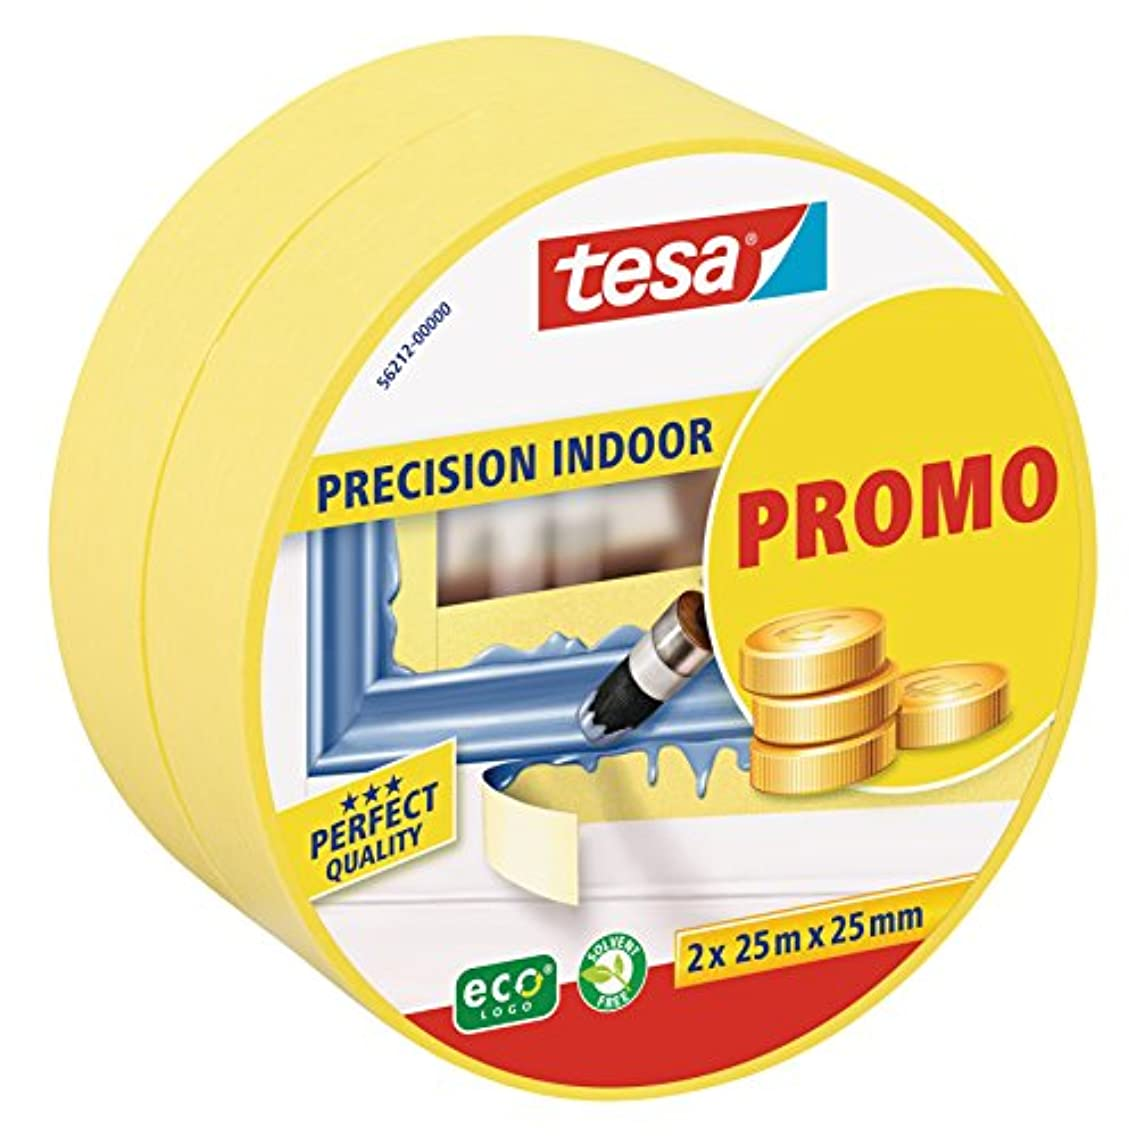 Tesa 56212-00000-00 Pair of Masking Tape Rolls for Indoor Paintwork, 25?m?x?25?mm